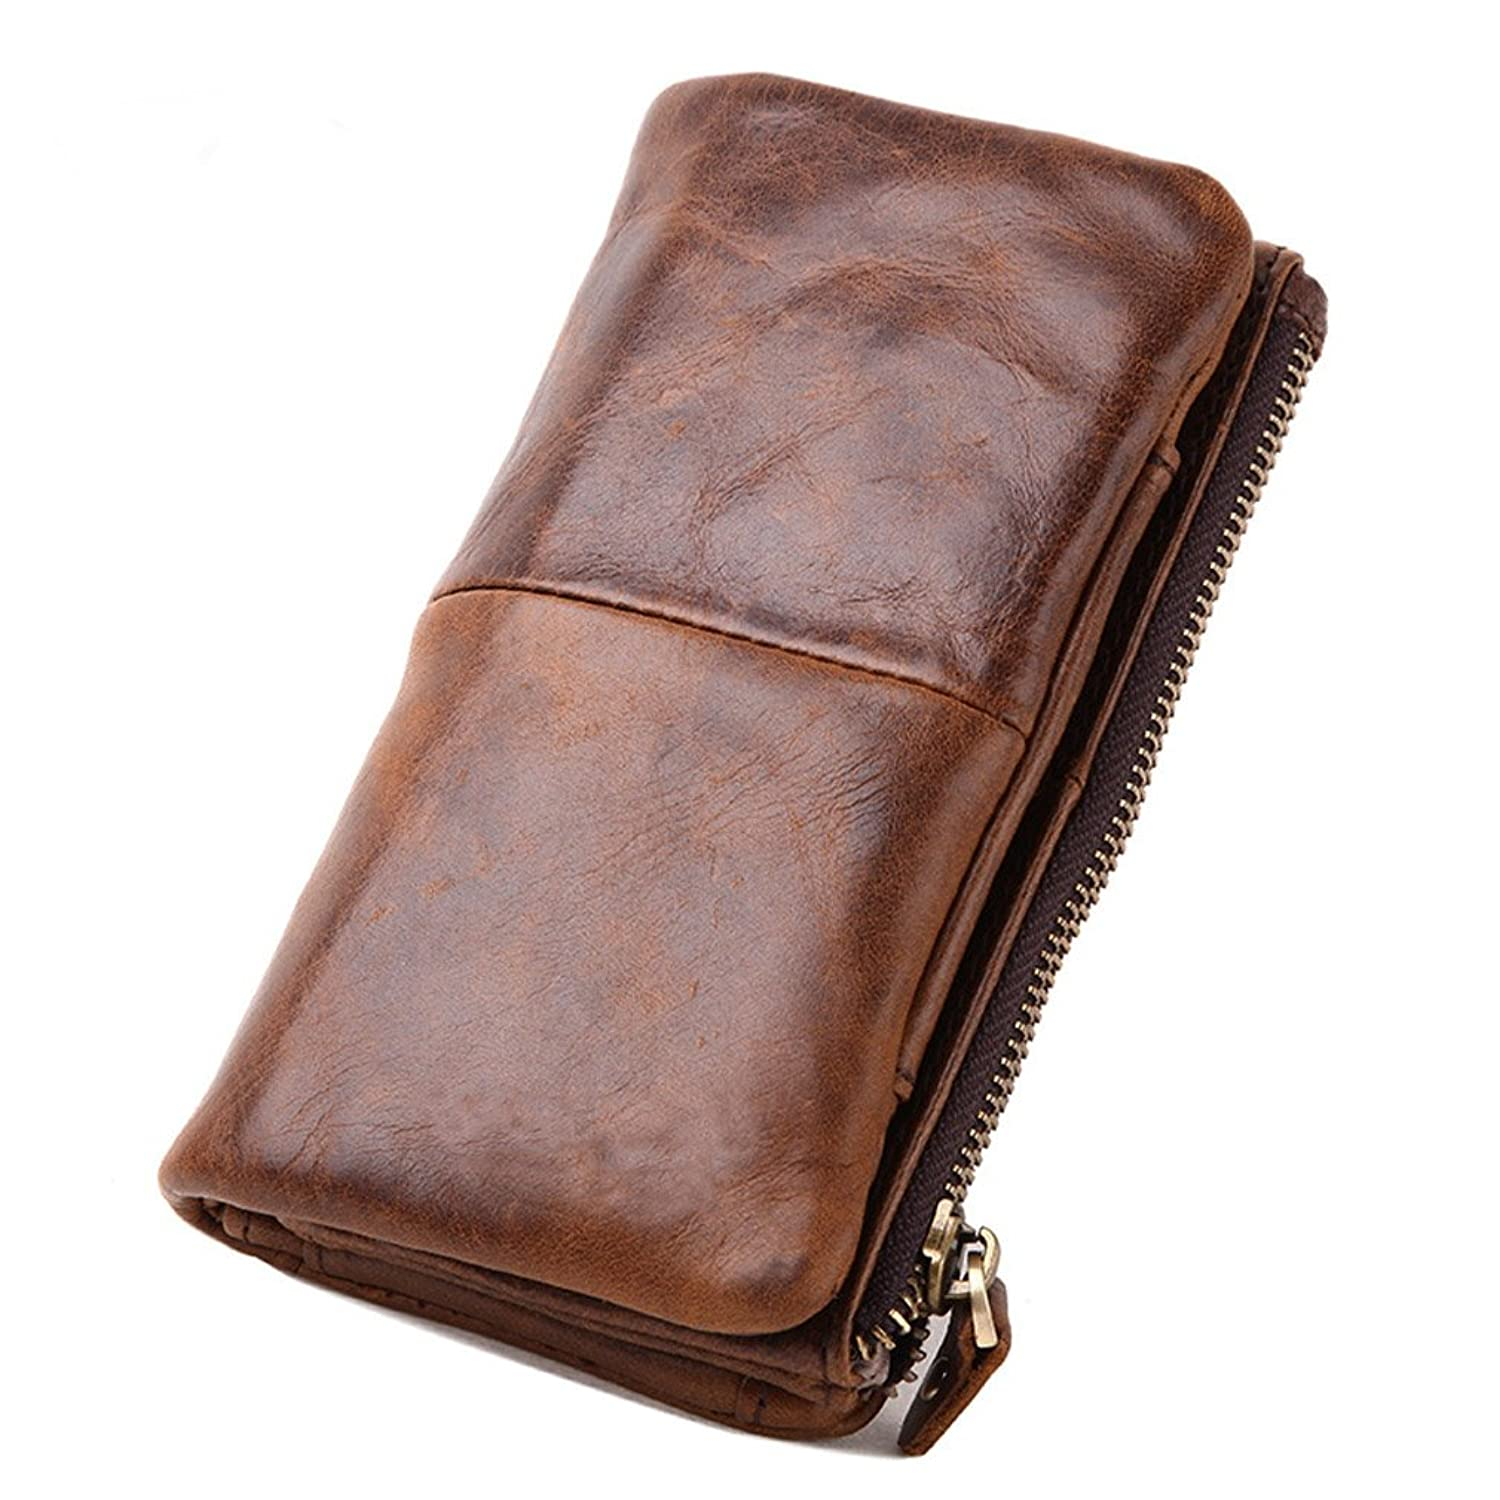 Leather Organizer For Men Le'aokuu Mens Genuine Leather